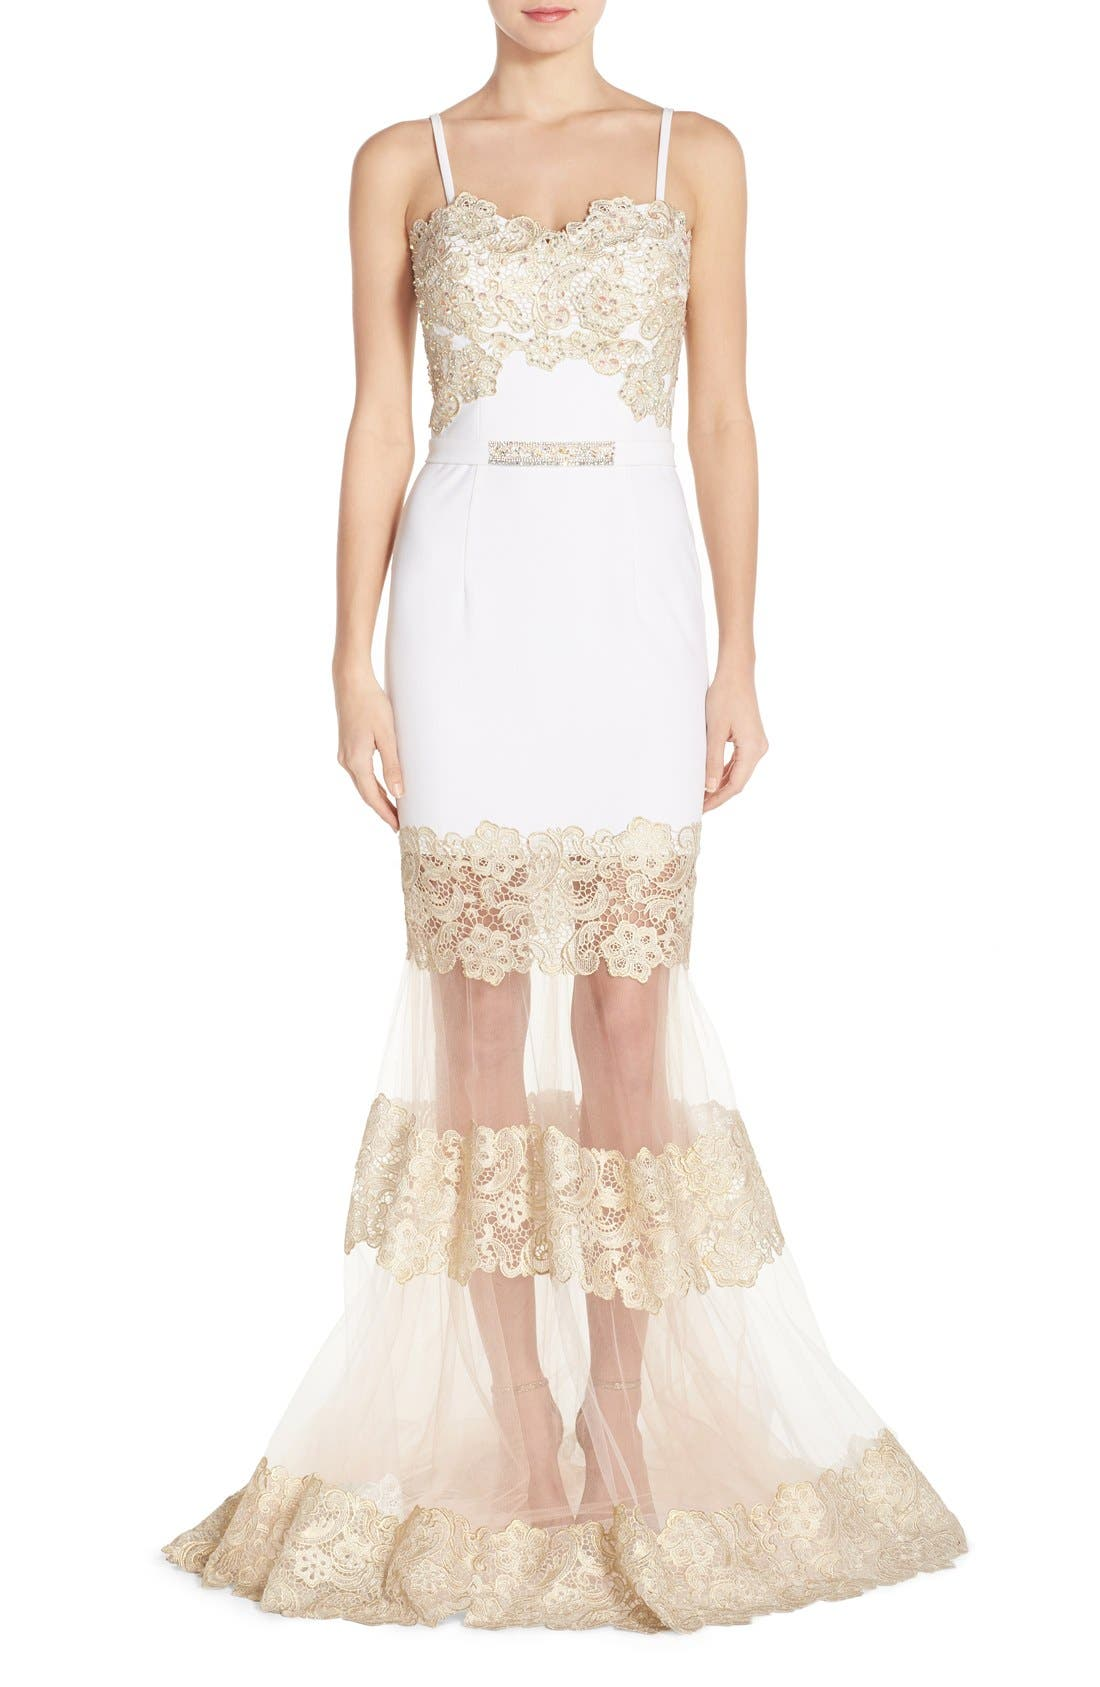 Alternate Image 1 Selected - Terani Couture Illusion Lace & Crepe Mermaid Gown